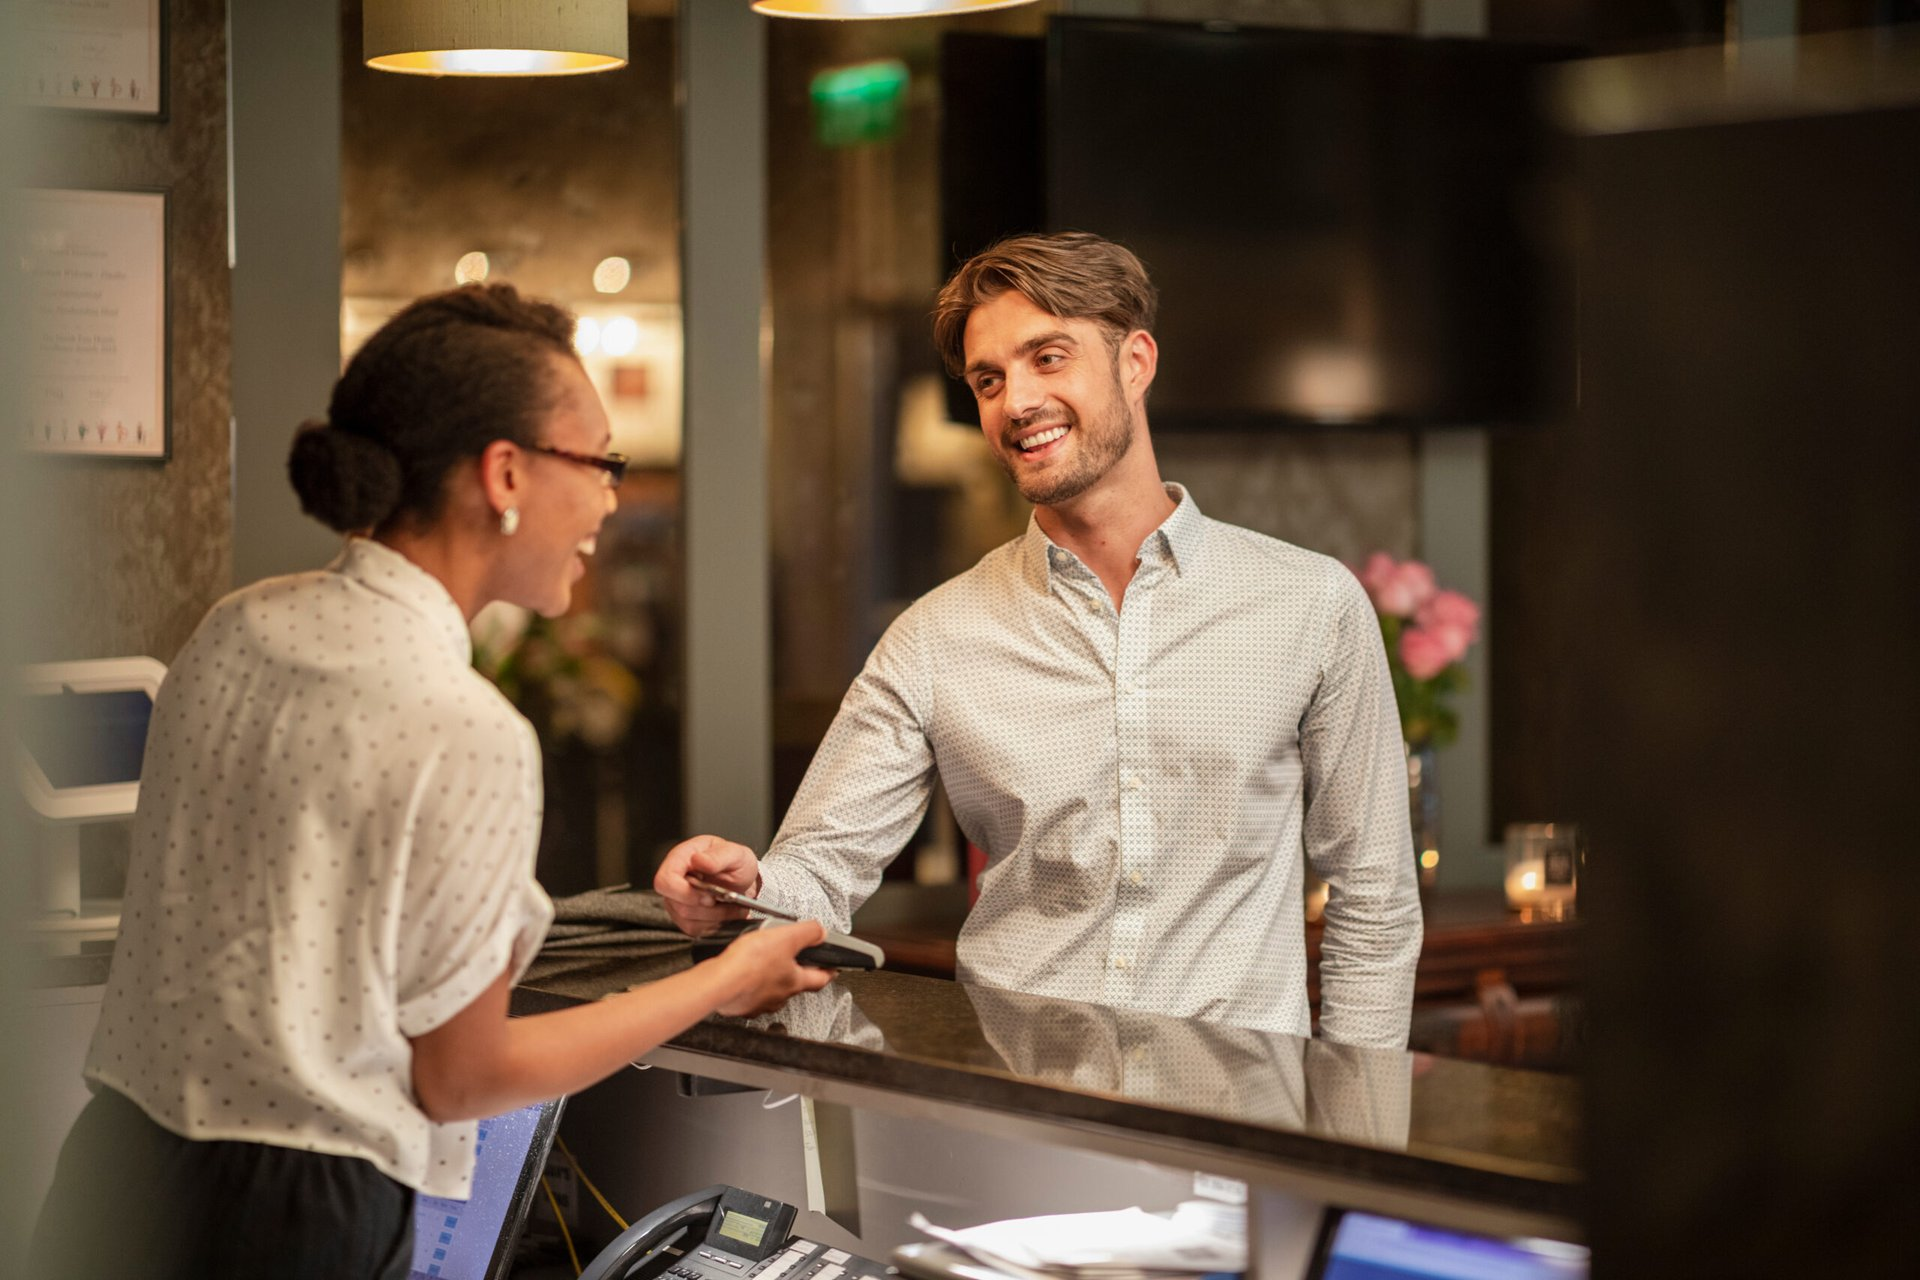 Man checking into hotel with credit card rewards